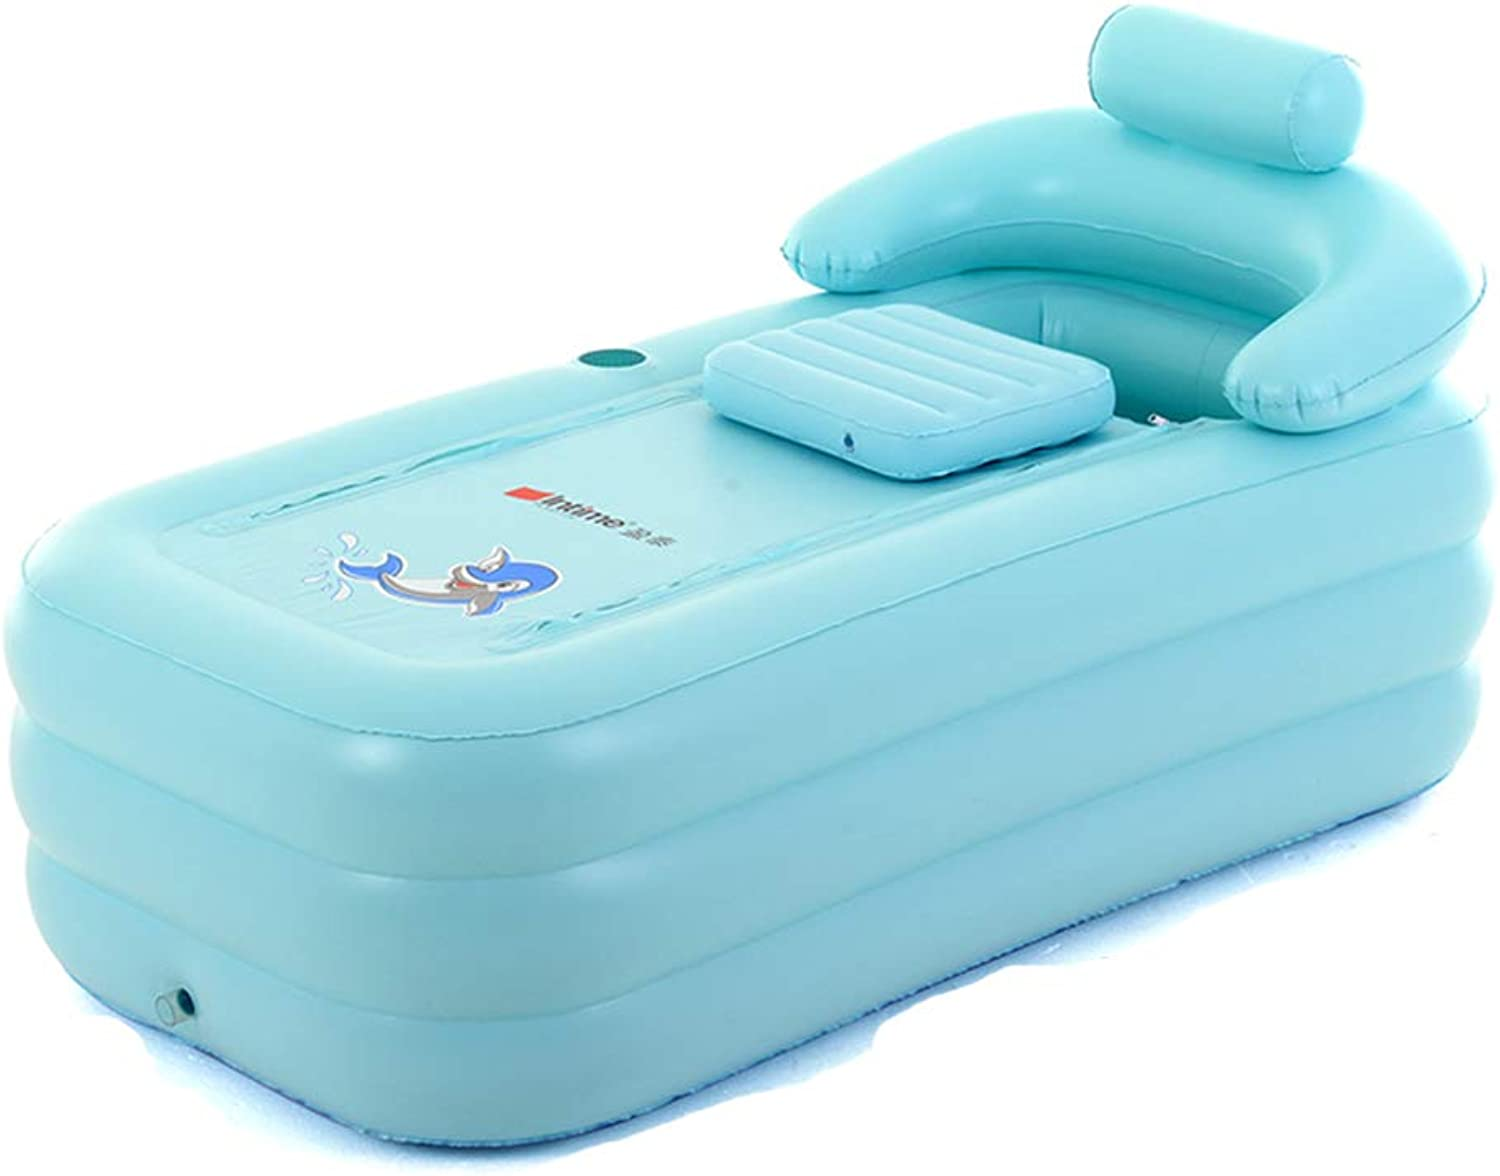 Bathtub Bathtub Bathtub Adult Bathing Bathtub Thicken PVC Electric Pump (color   Green, Size   84  160  64cm)